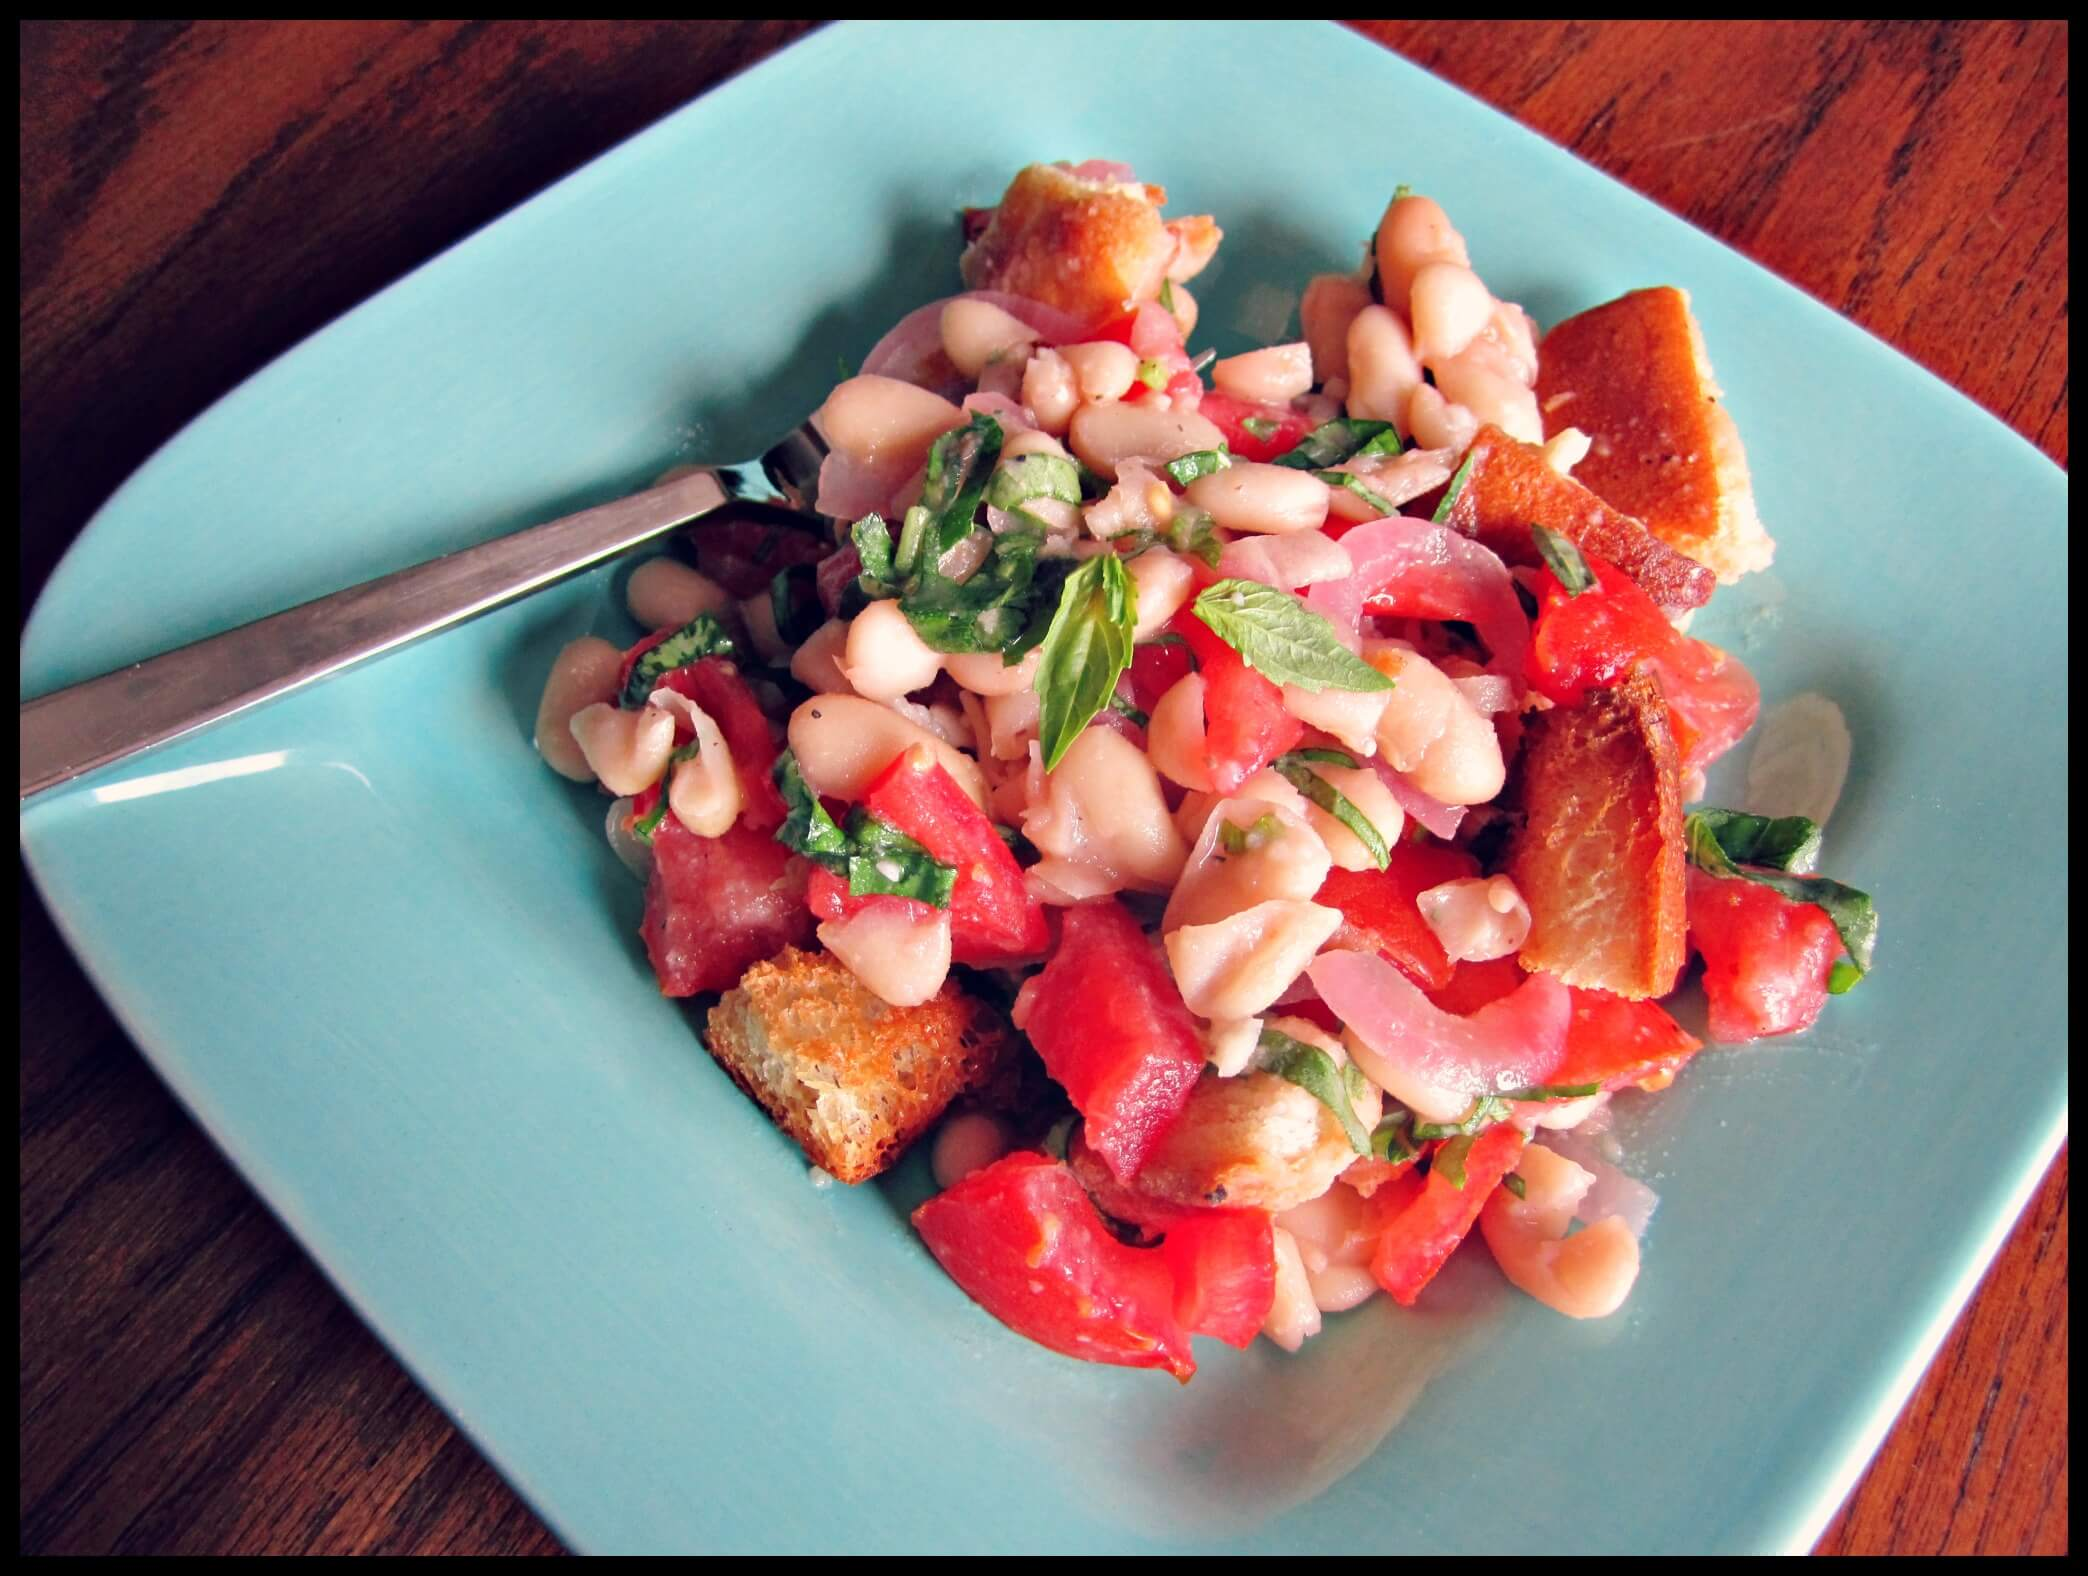 Panzanella: Bread Salad with Bends and Tomato | www.infinebalance.com #salad #recipe #vegetarian